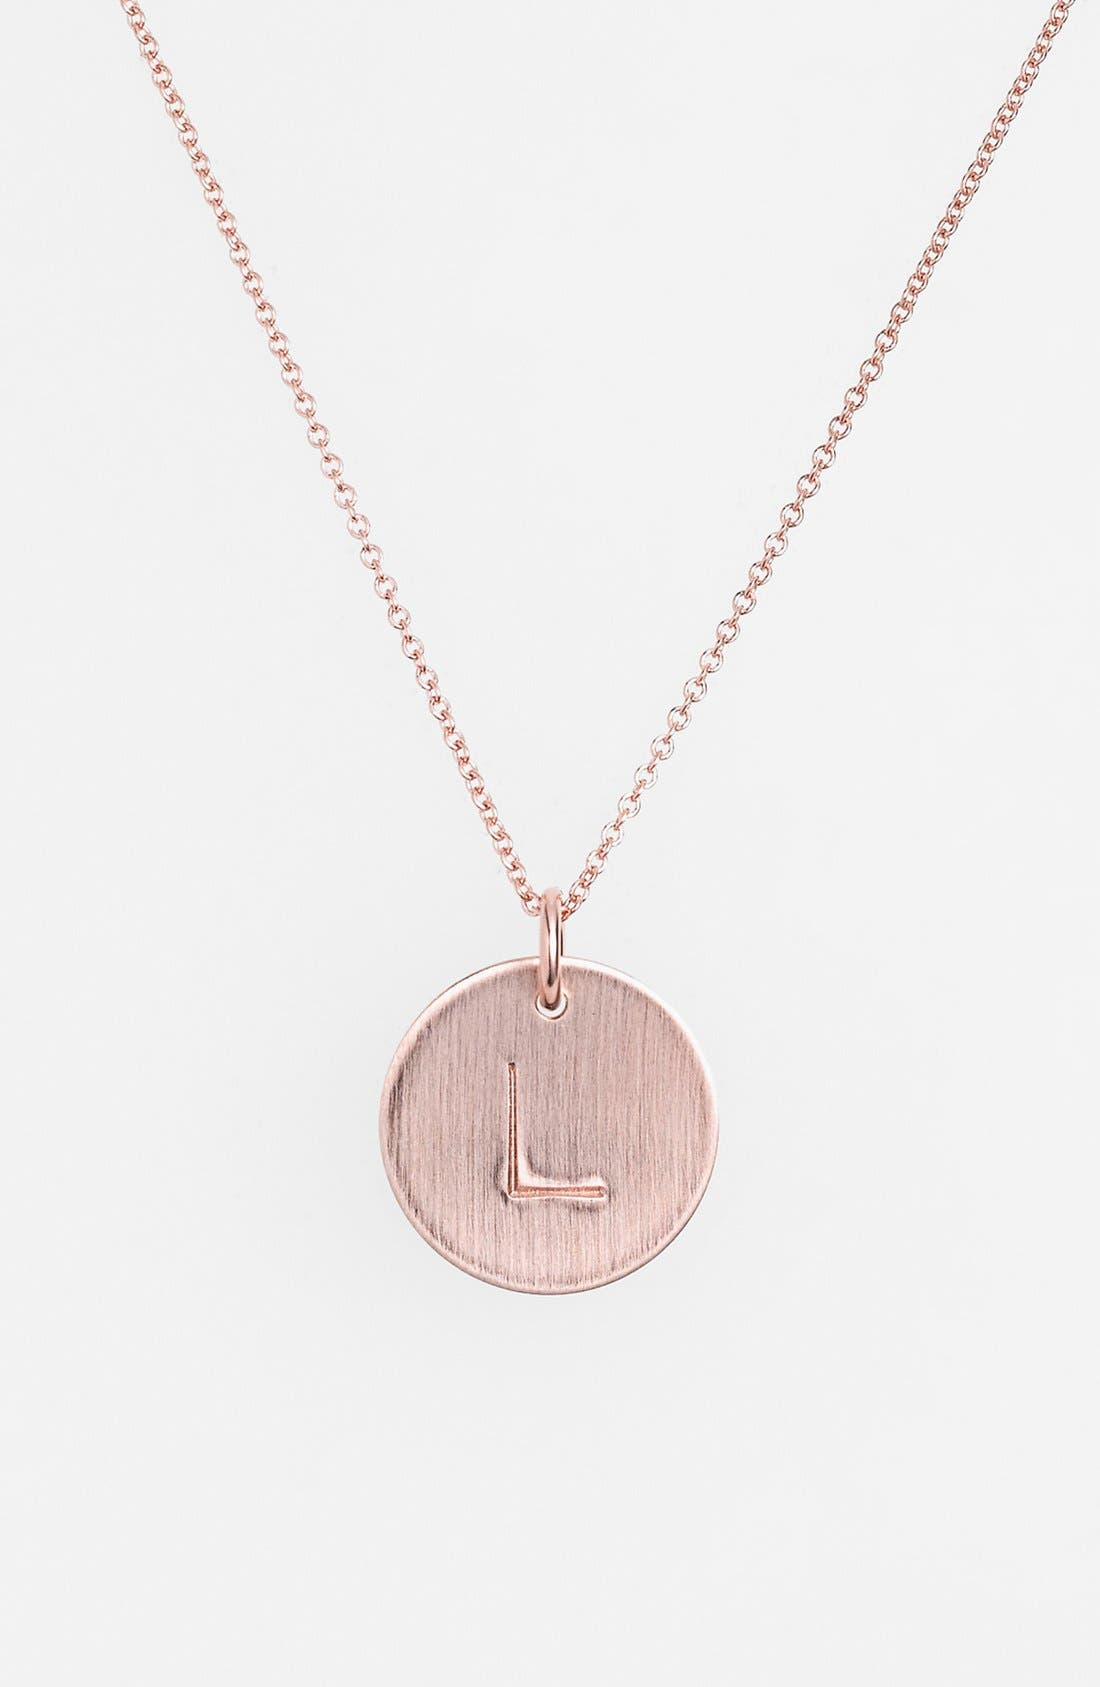 14k-Rose Gold Fill Initial Disc Necklace,                             Main thumbnail 12, color,